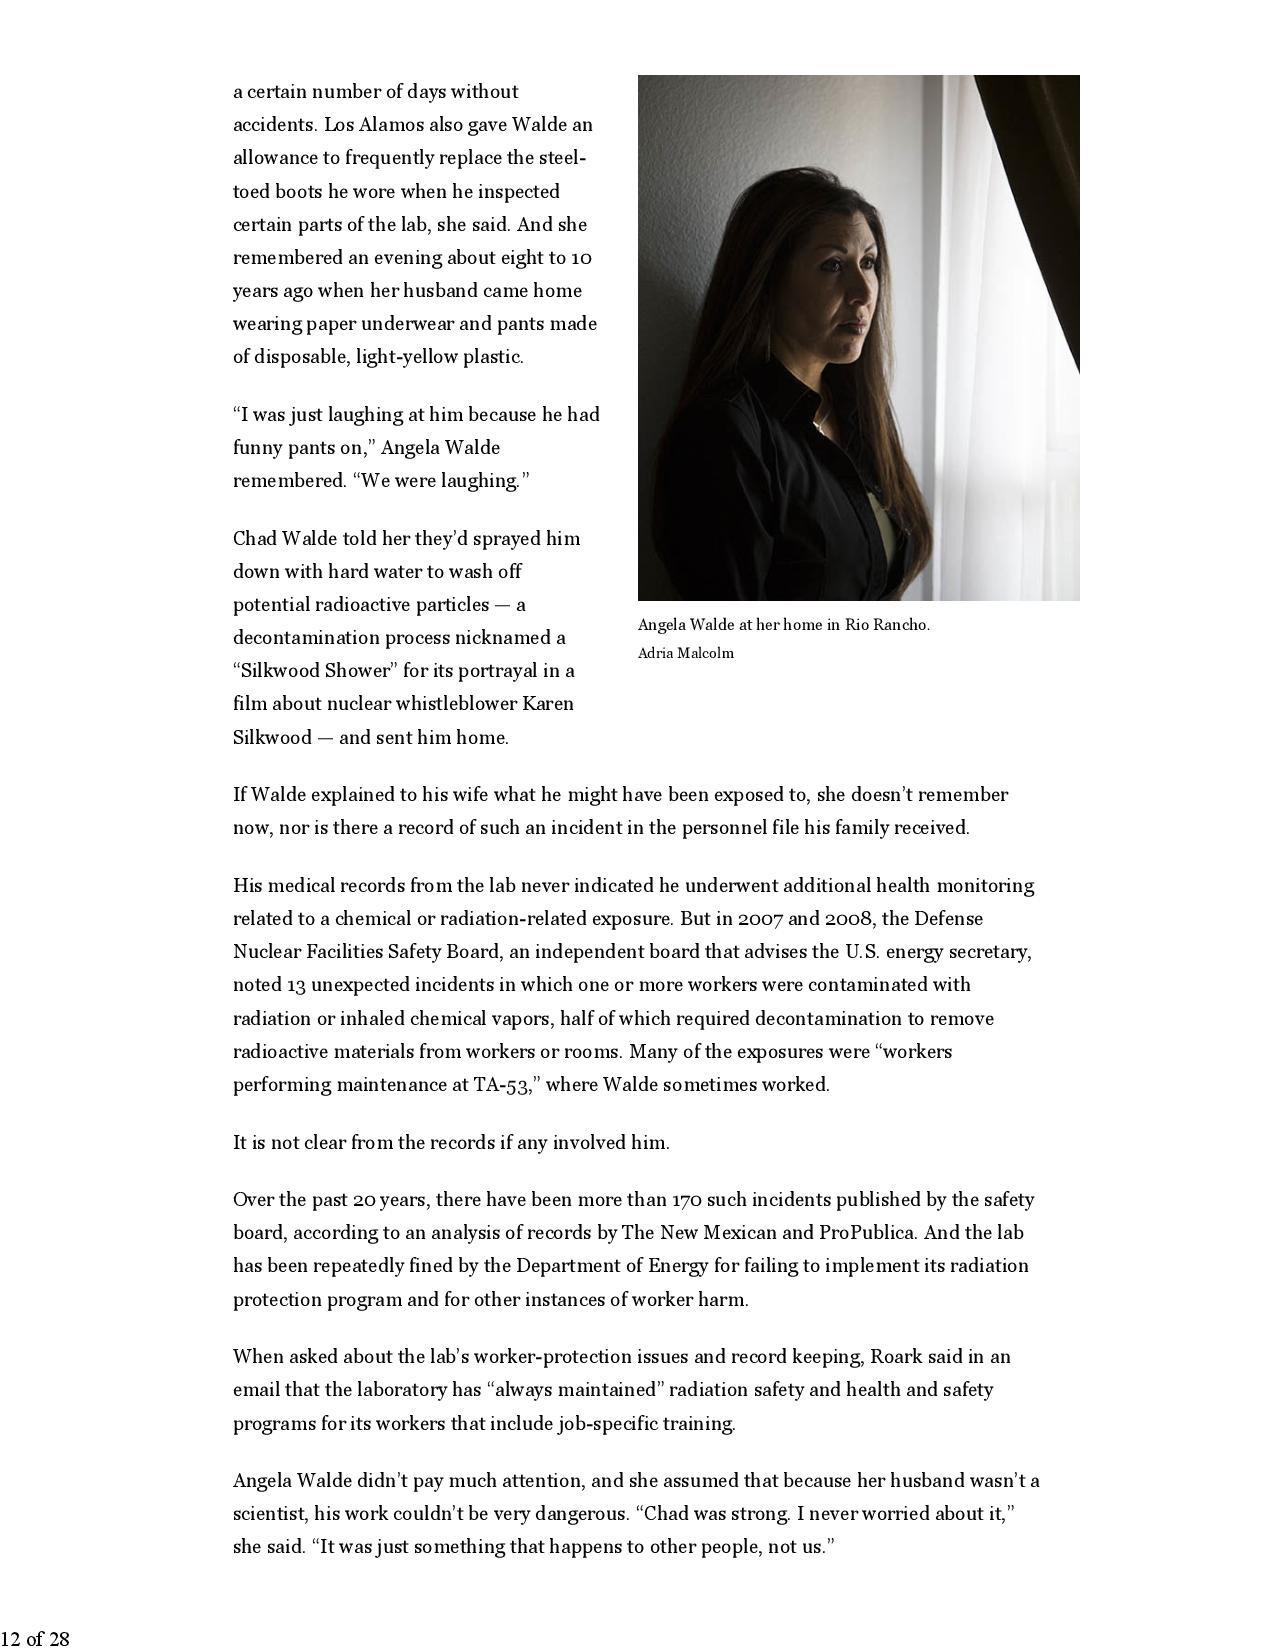 The life and death of Chad Walde - Local News-page-012